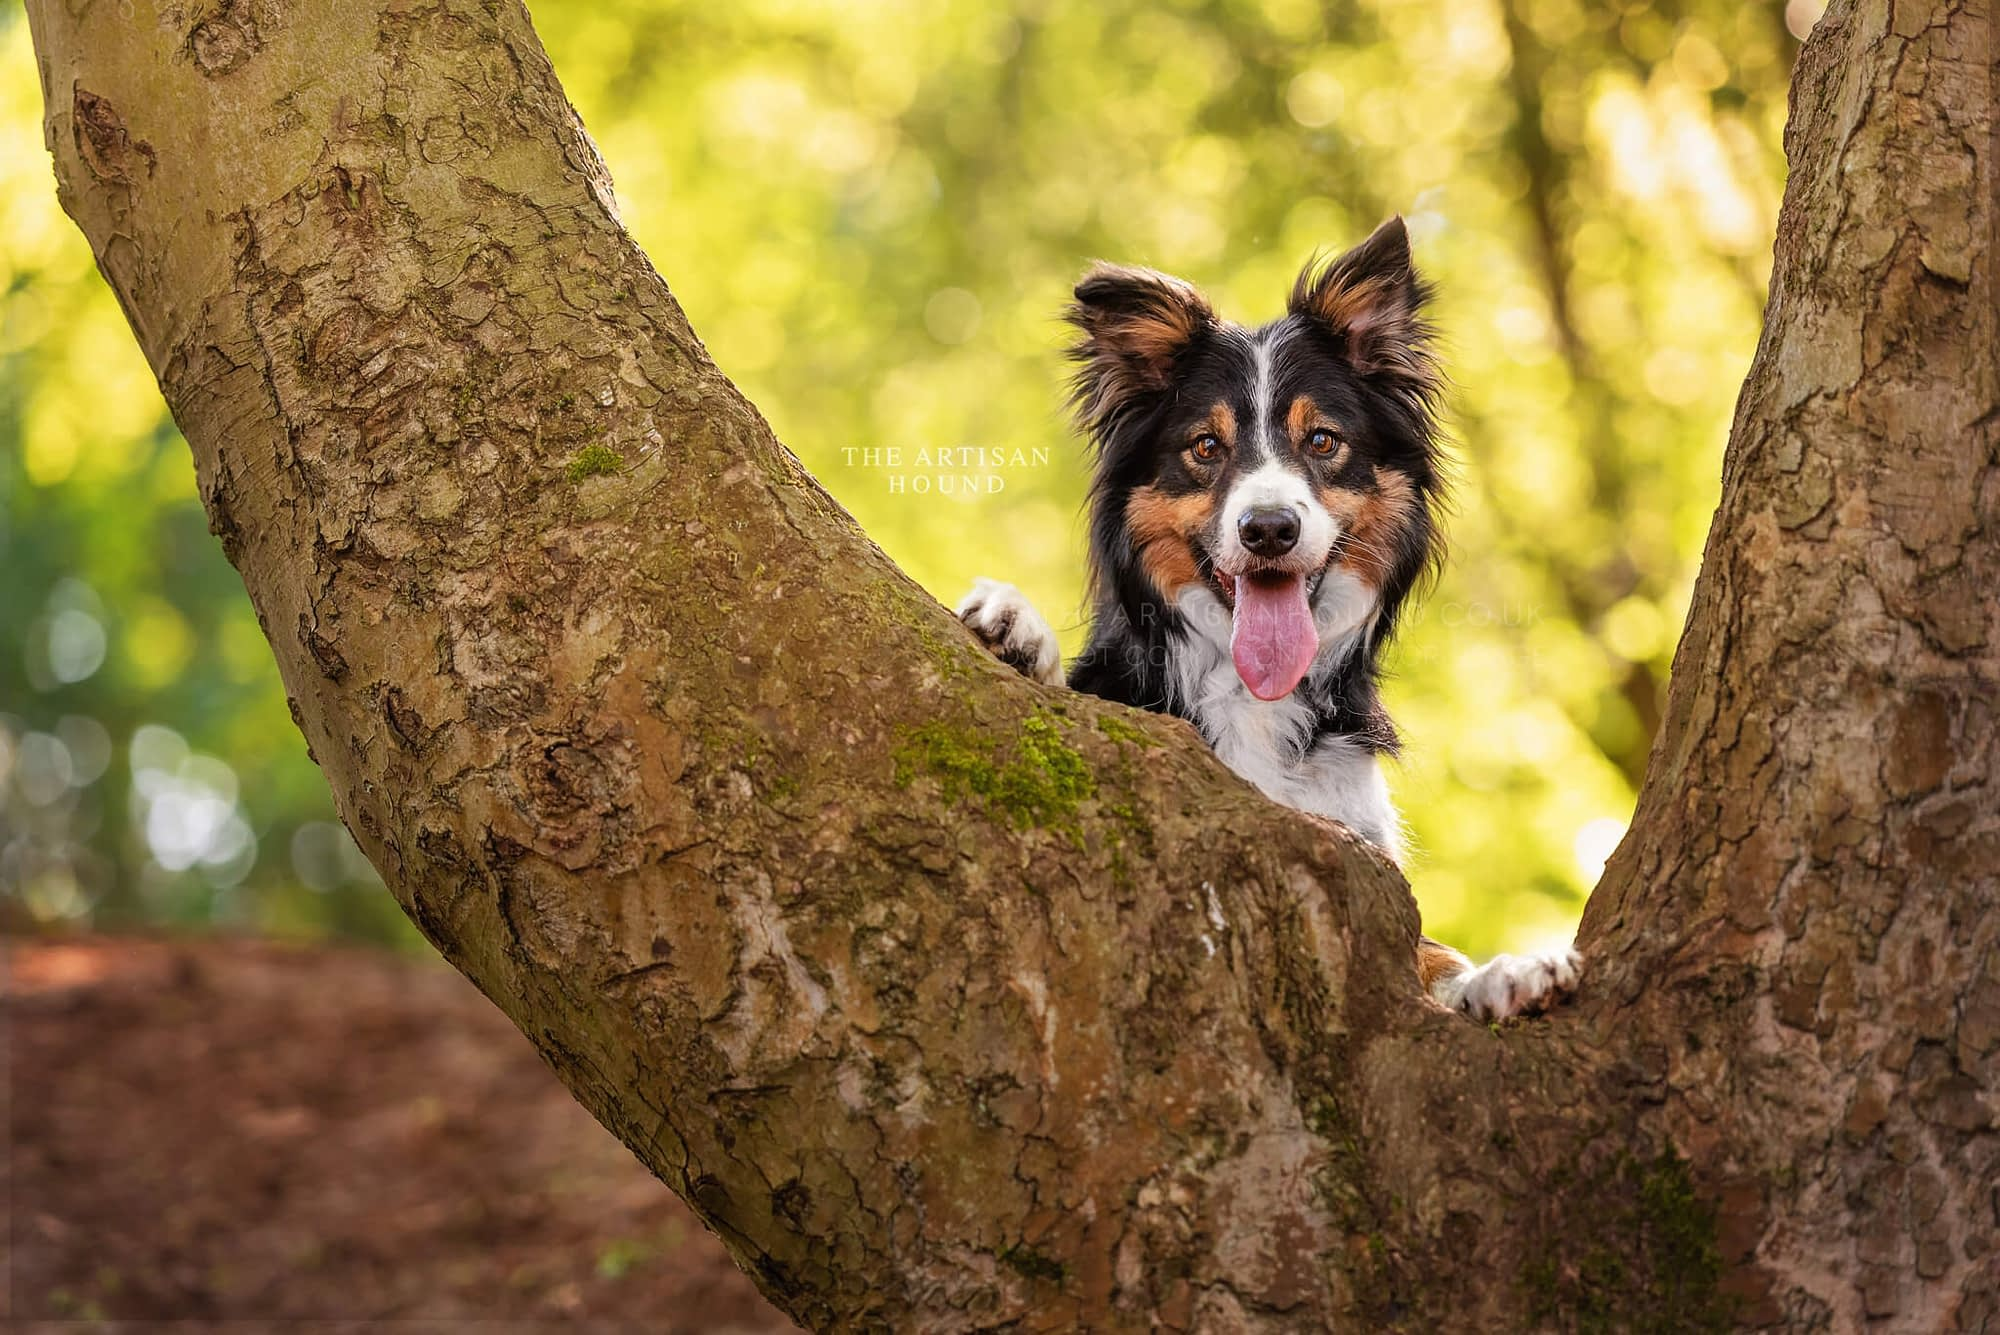 Border Collie dog with paws up against tree